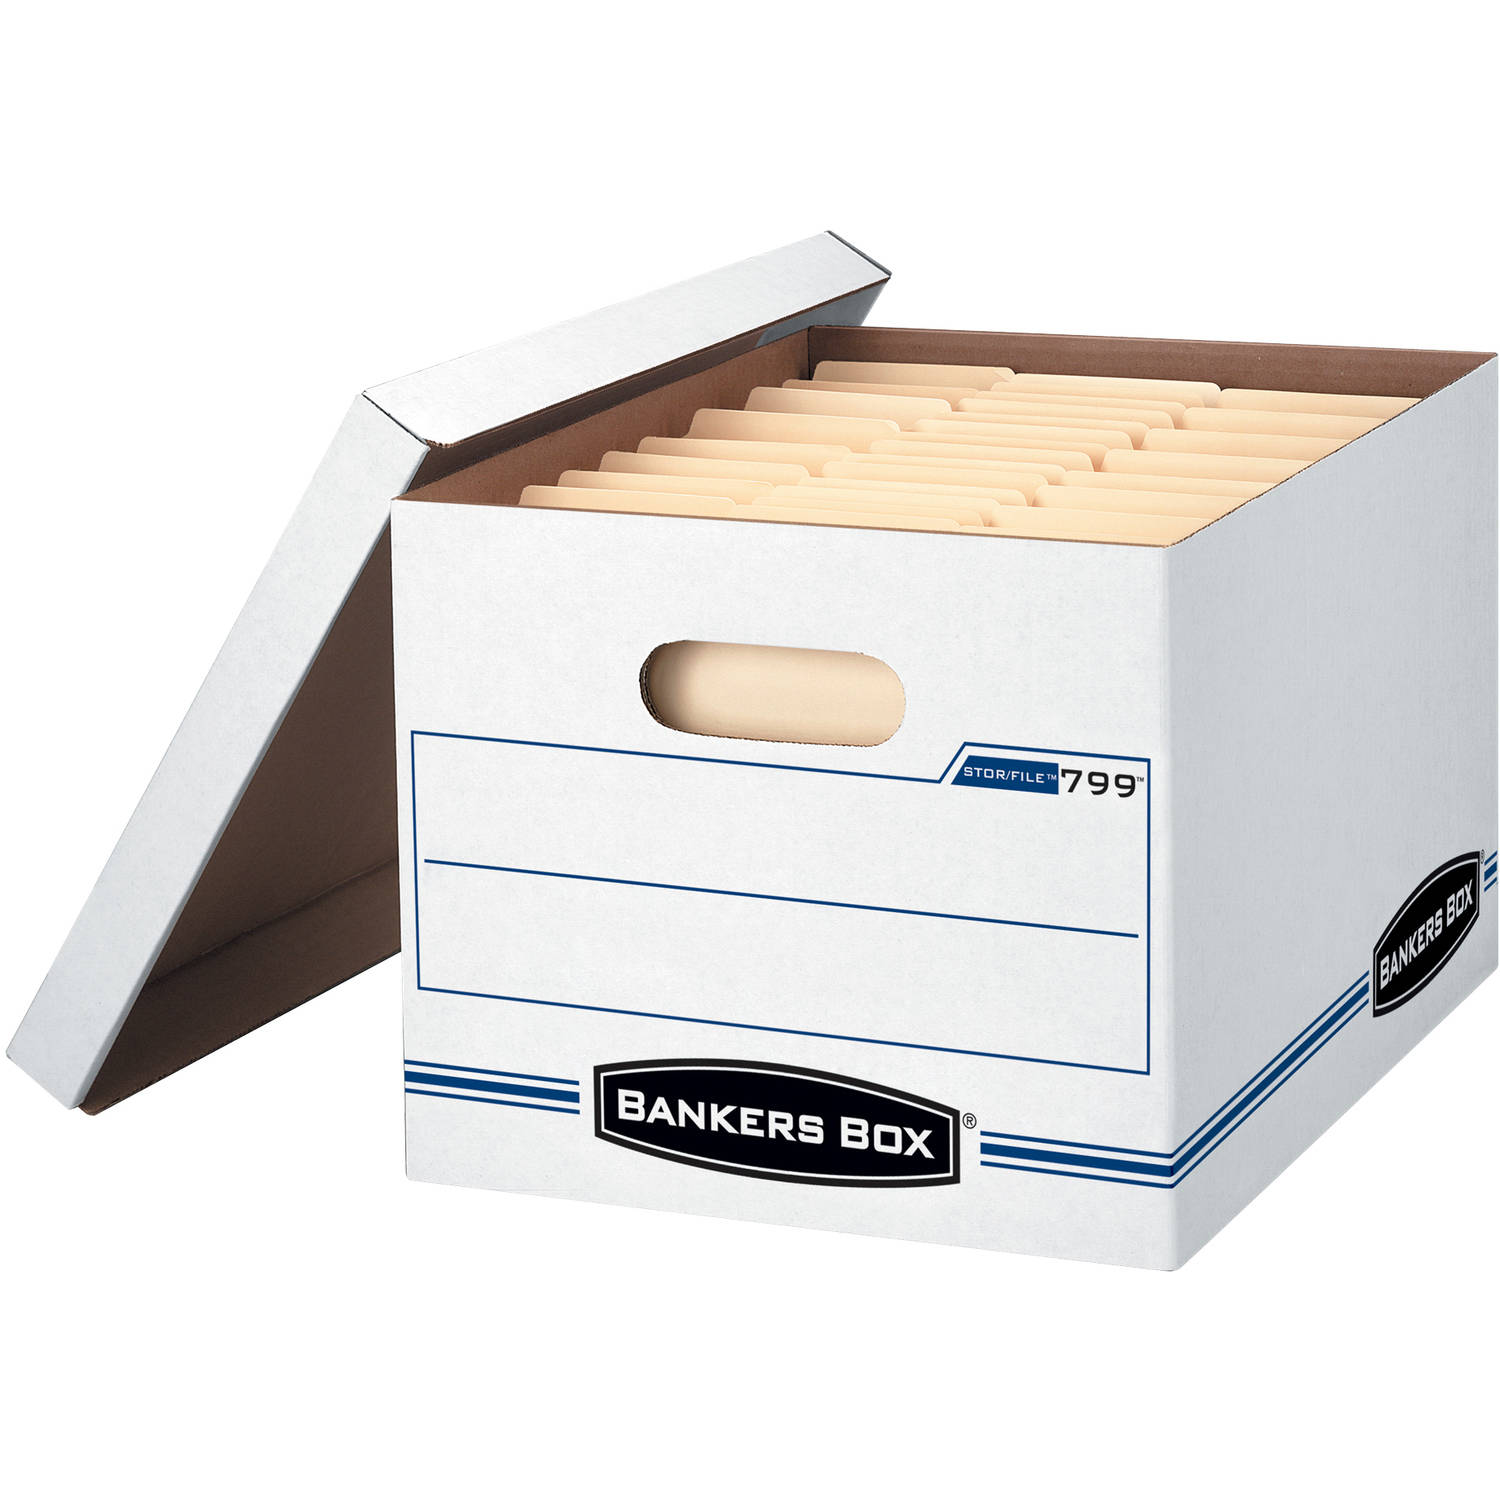 Bankers Box Stor/File Storage Box With Lift Off Lid, Letter/Legal